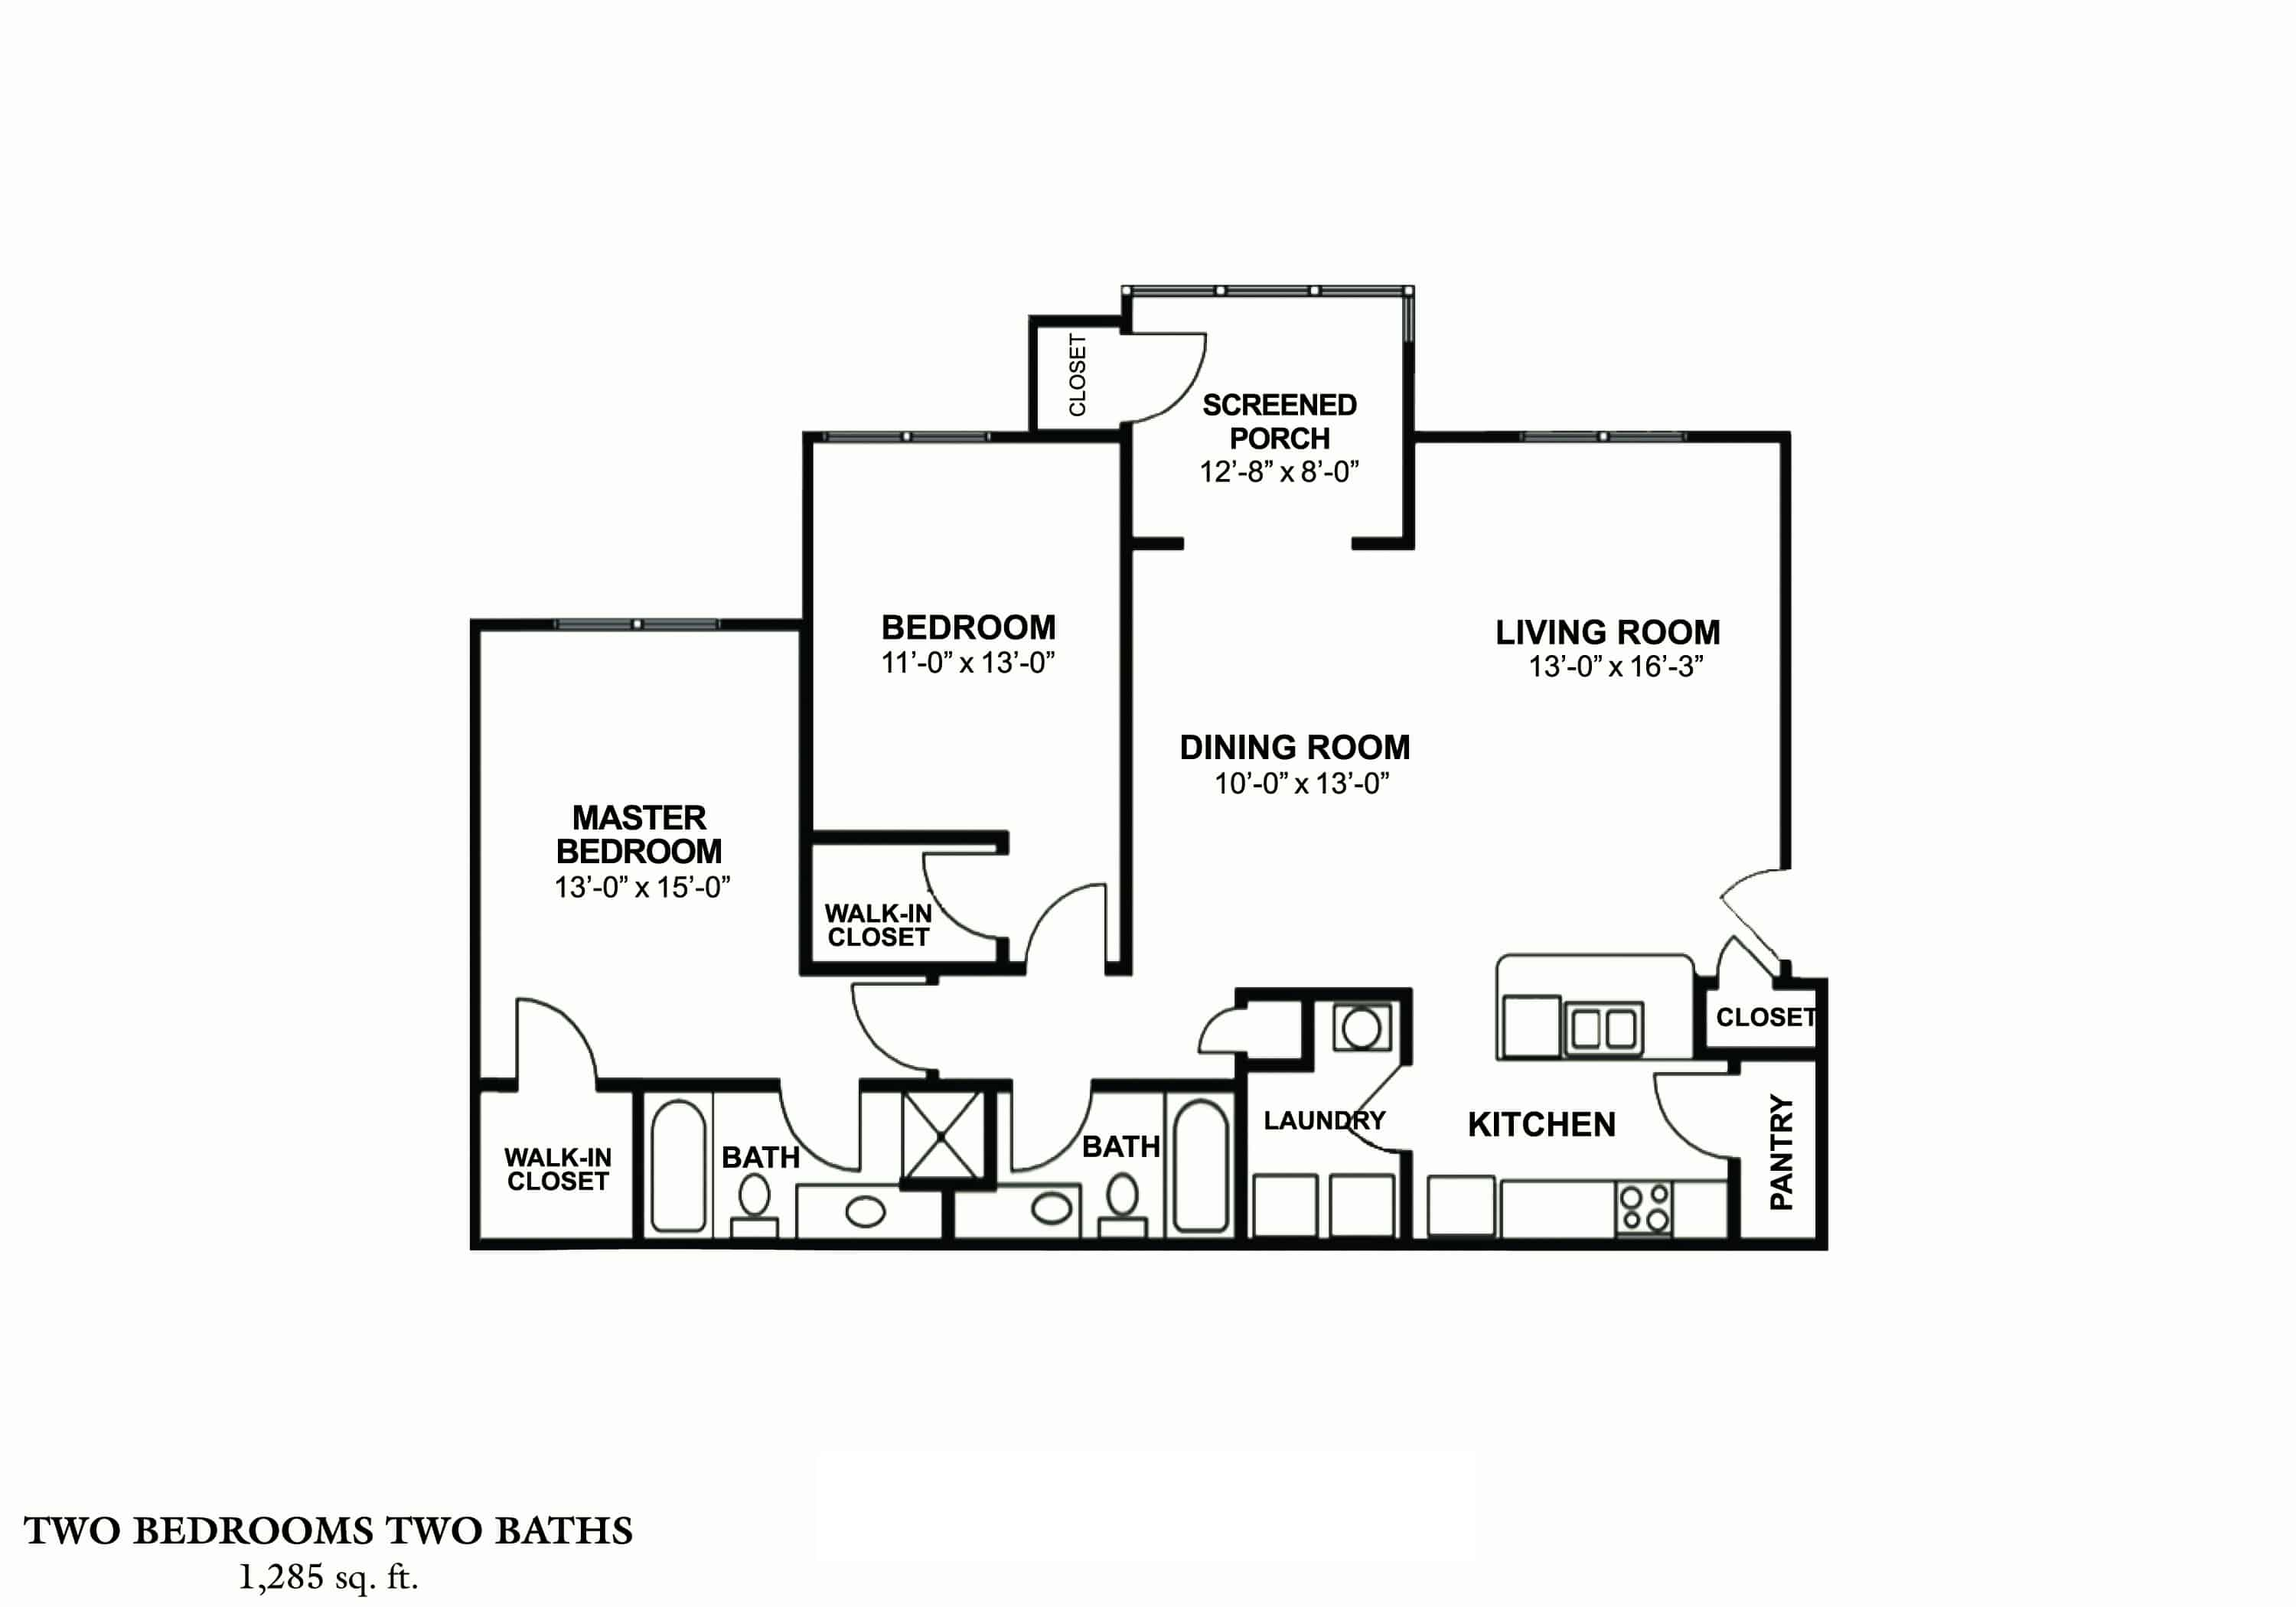 Greystone's Columbus Georgia Apartments two bedroom two bath floor plan